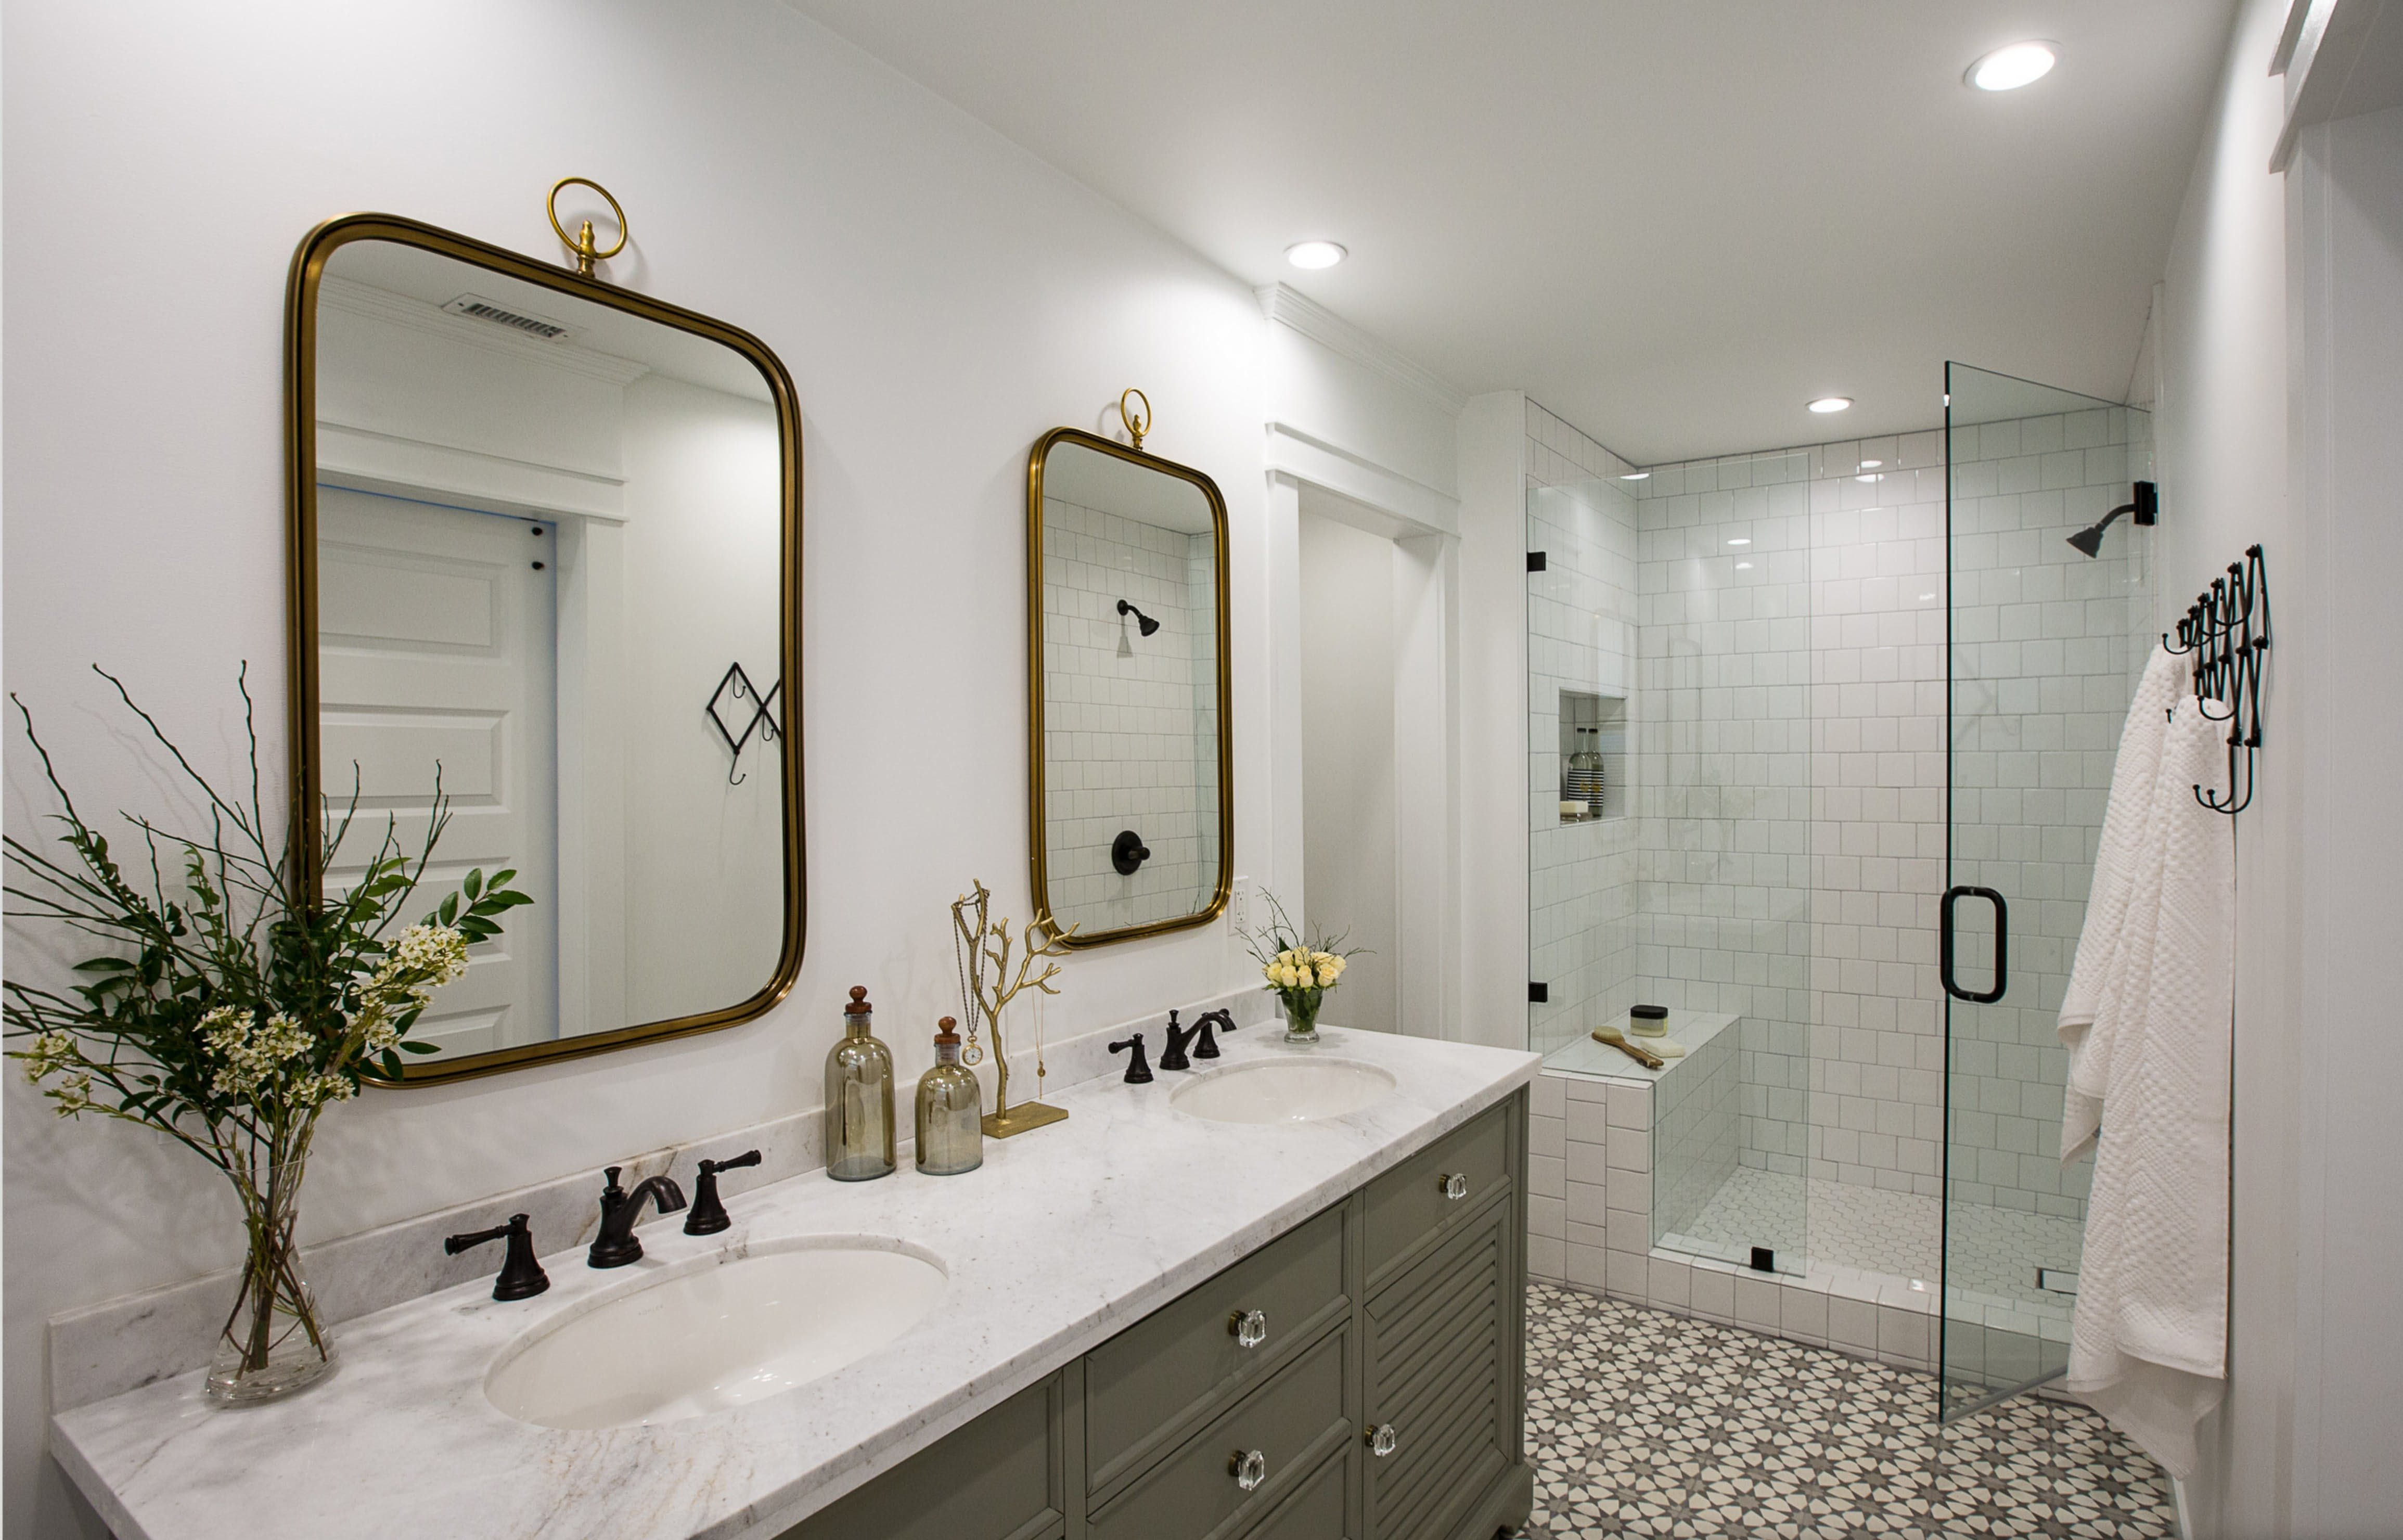 A Husband And Wifes Happy Medium Small Space Bathroom Renovation - Small space bathroom renovations